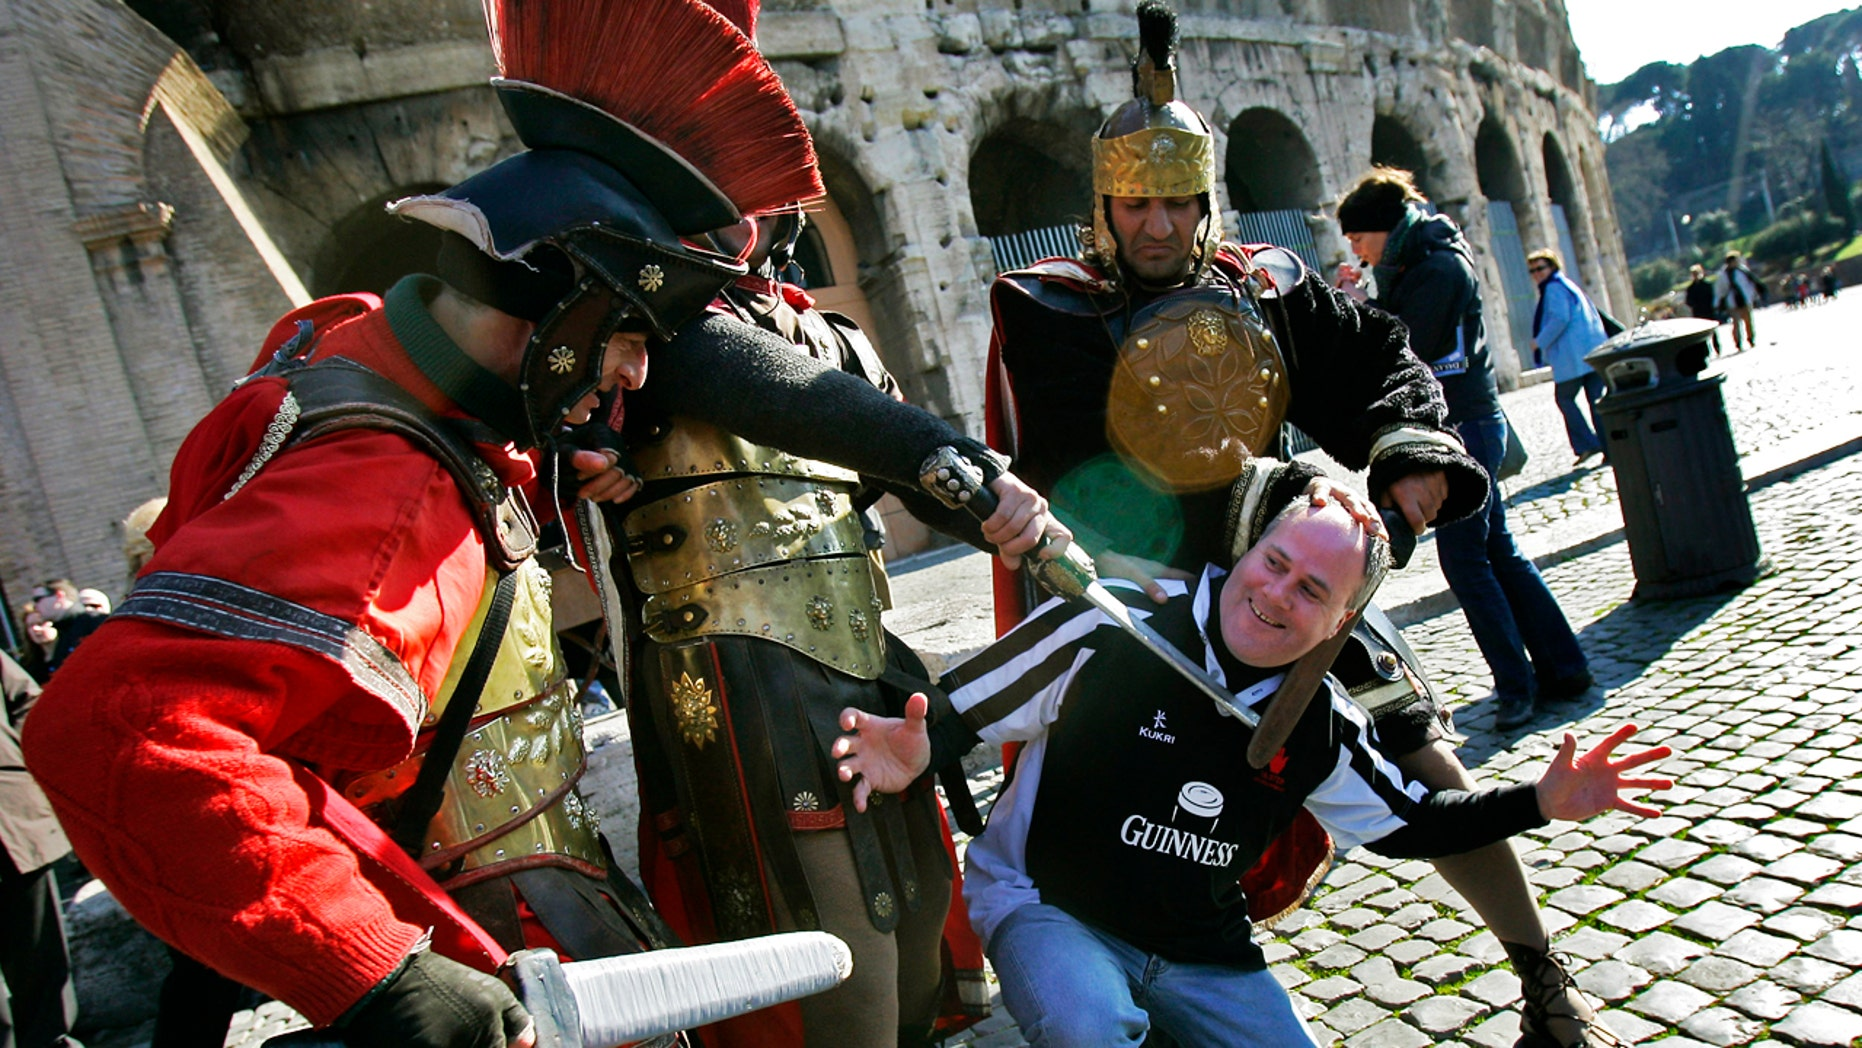 Actors dressed like gladiators are now banned outside of Rome's famed attractions.